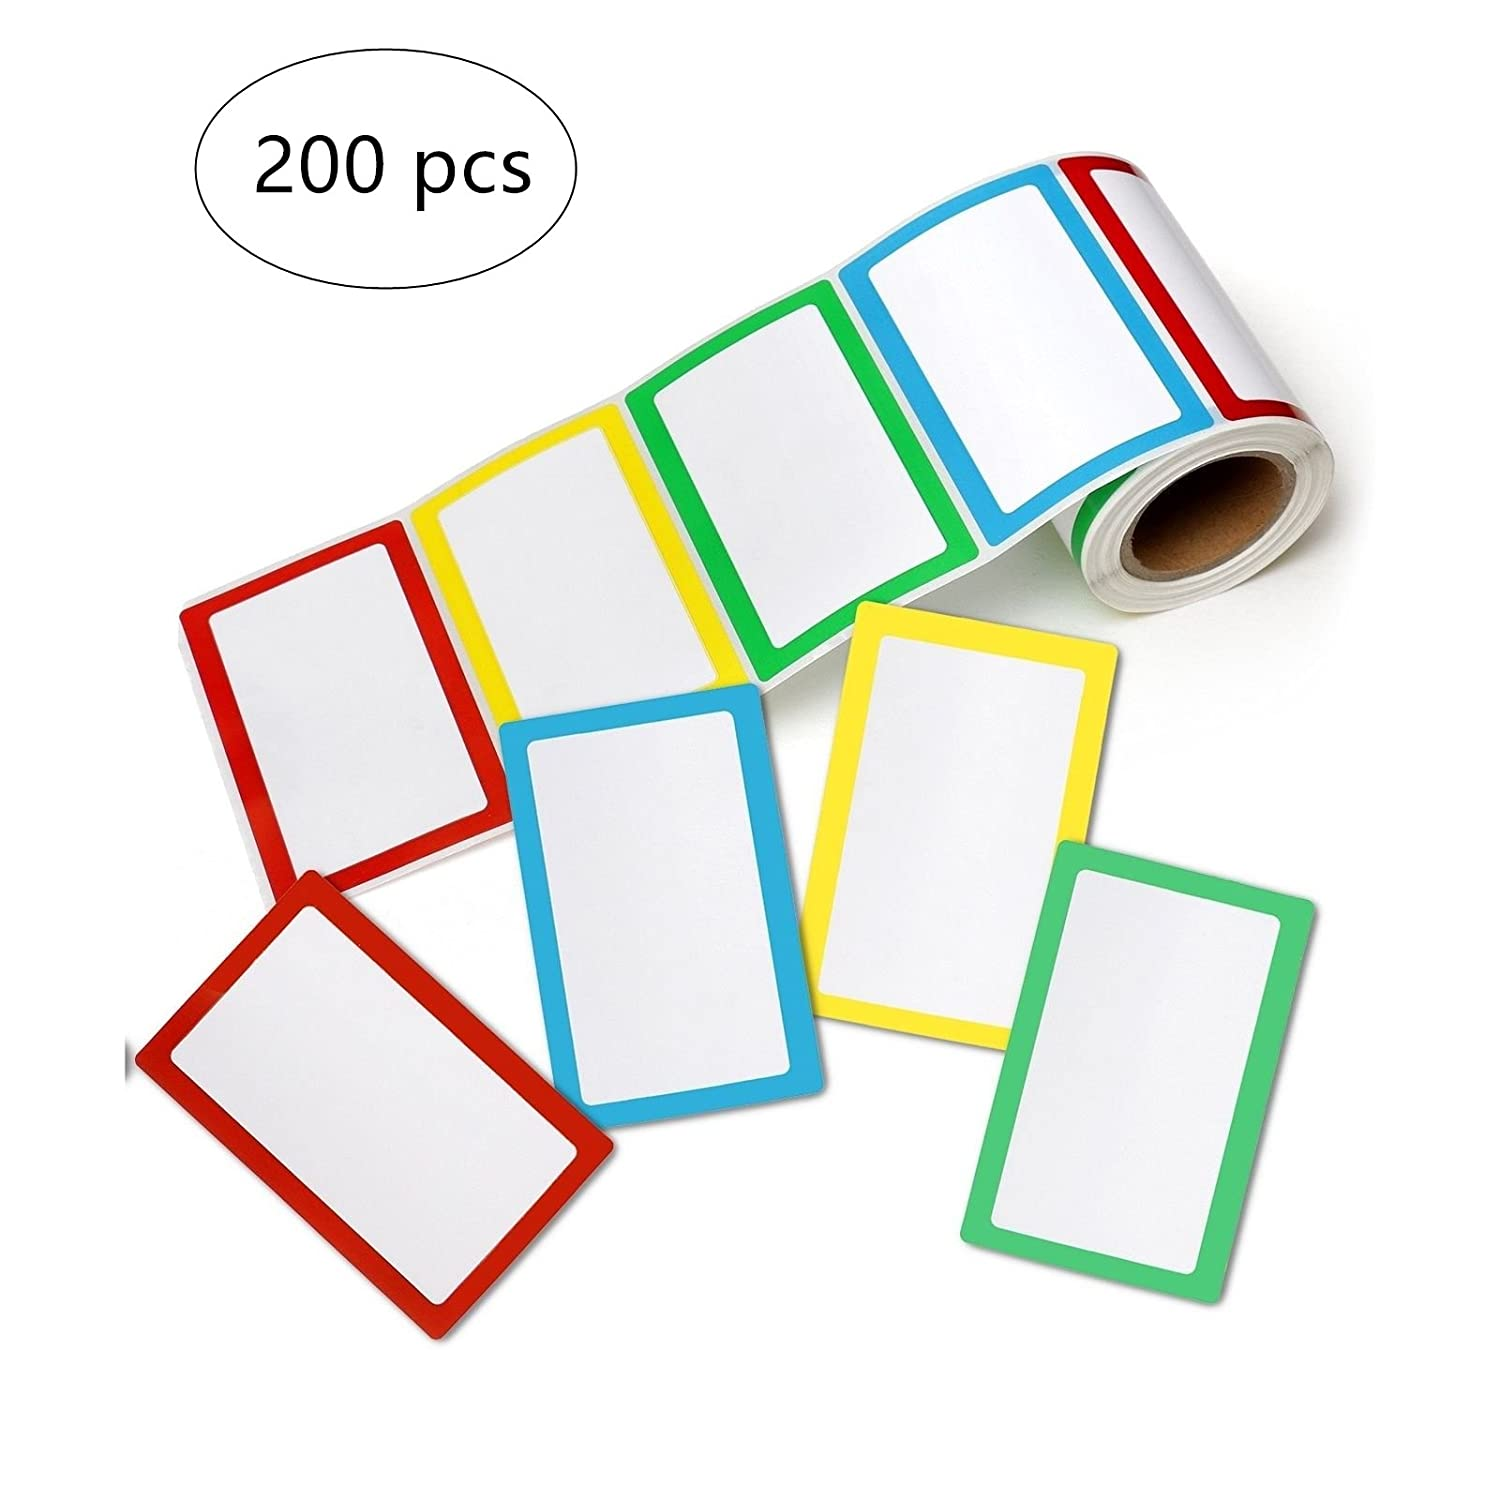 3.5 x 2.25 Hybsk 200pcs Plain Name Tag Labels Colorful Border Name Tag Stickers 4 Colors